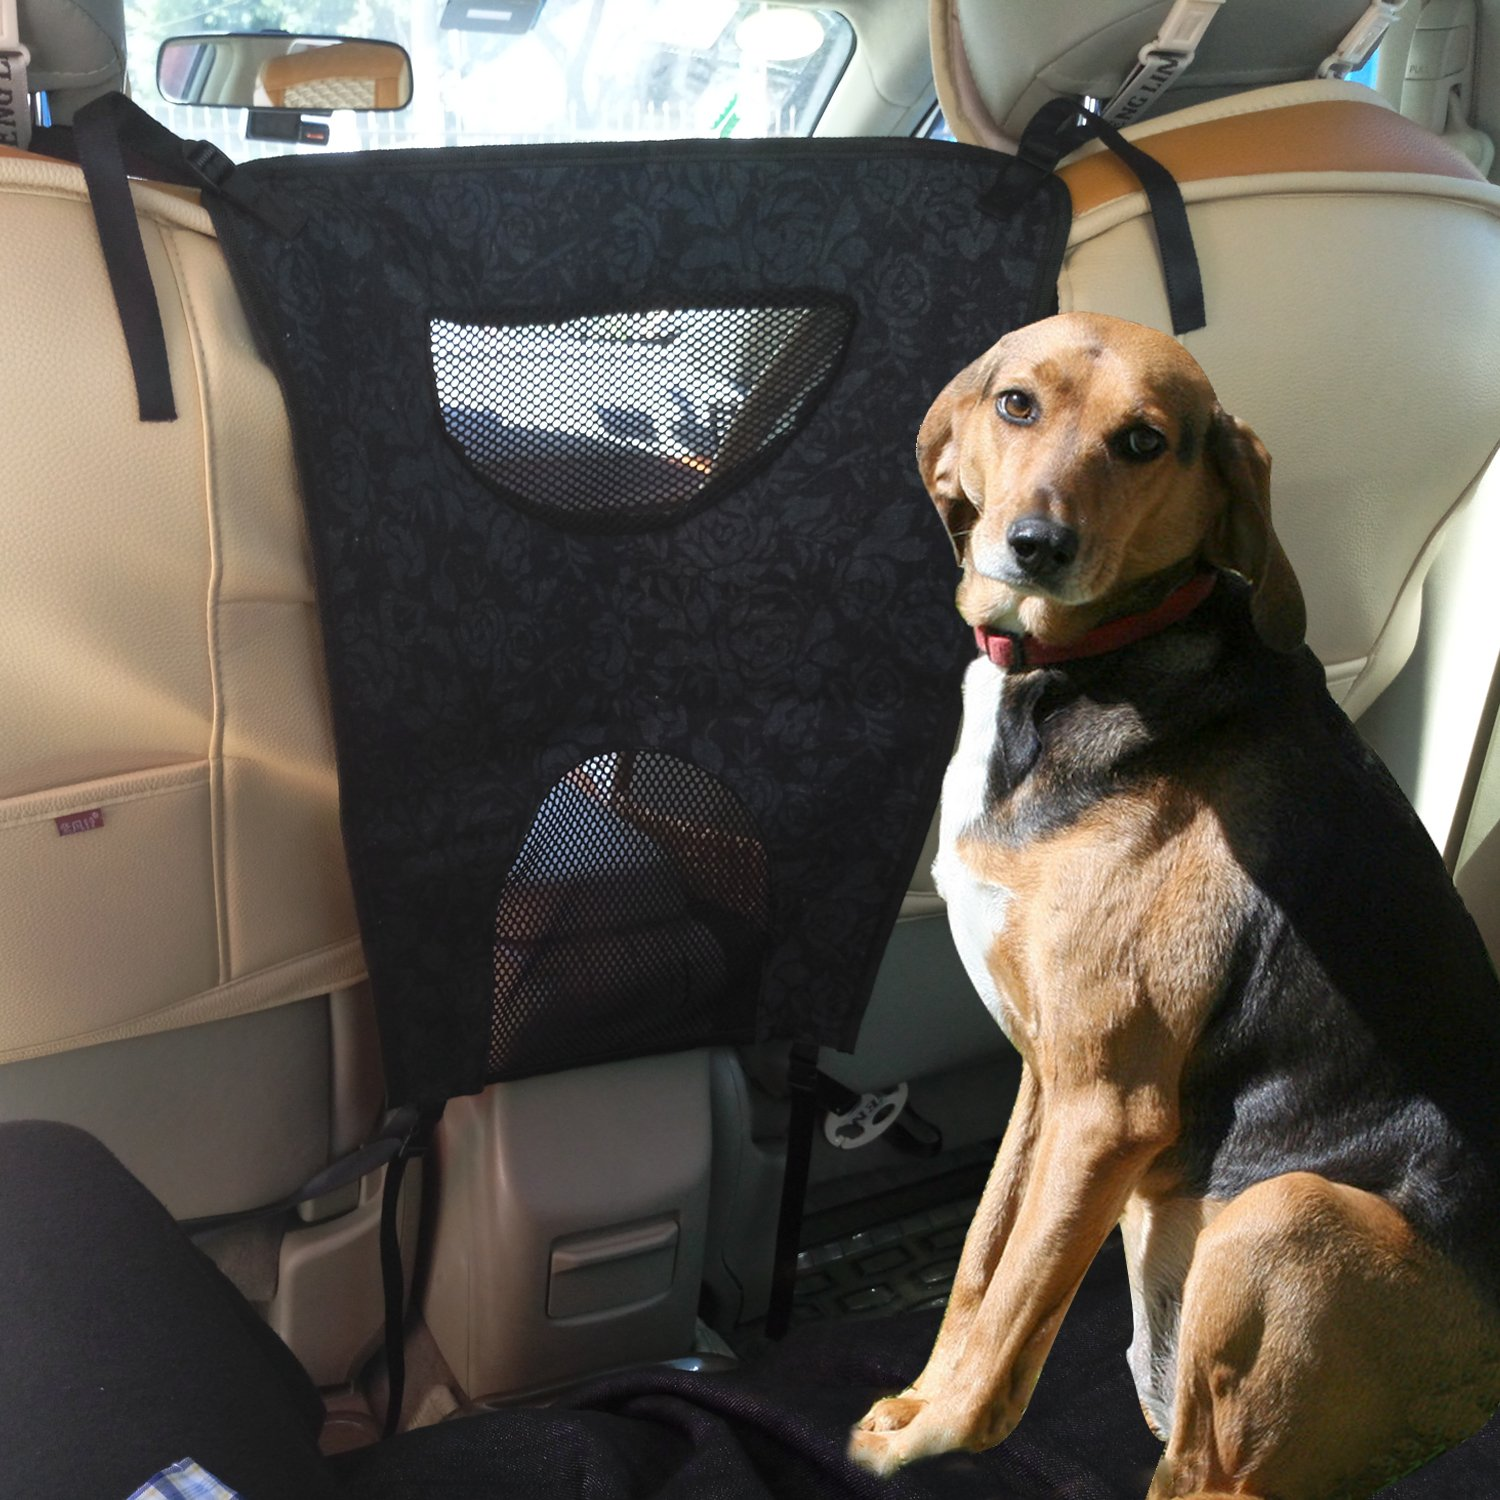 Dog Car Barriers,CarBoss Car Back Seat Mesh Barriers for Dog,Travel Automobile Safety Protectors and Vehicle Pet Net Barriers for Car,SUV,Truck,Van - Helps Keep Pets Off the Front Seat